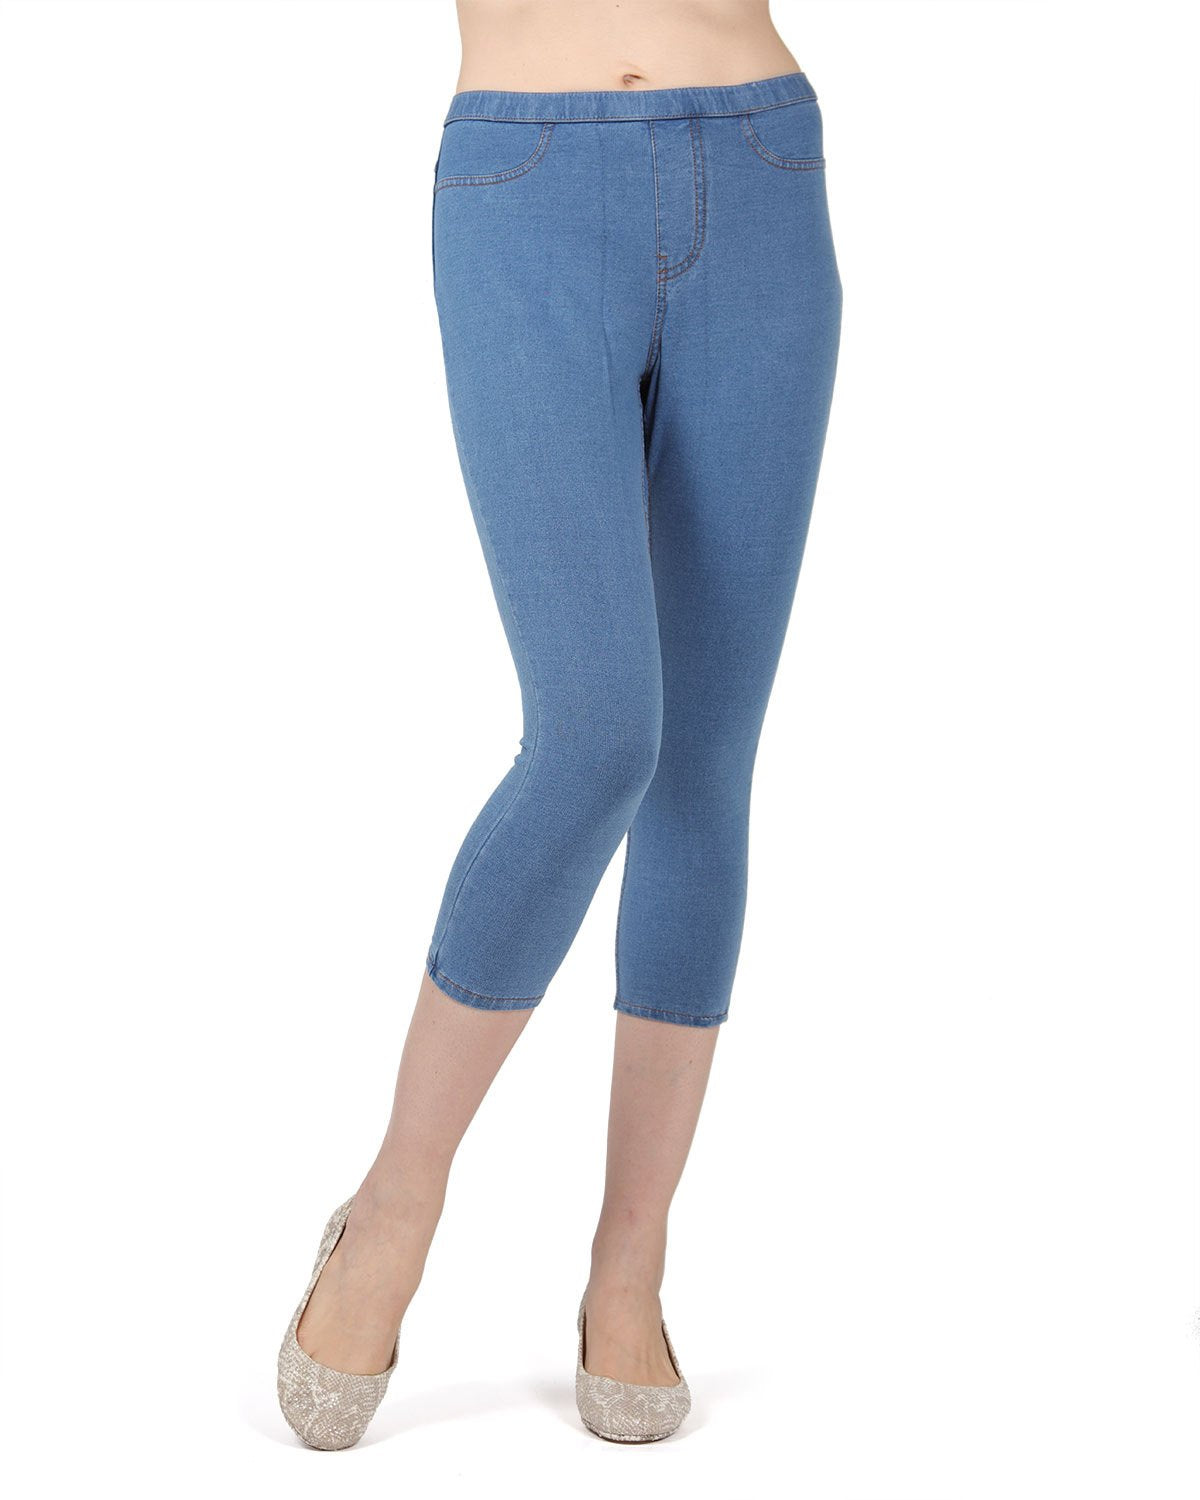 Priga Denim Capri